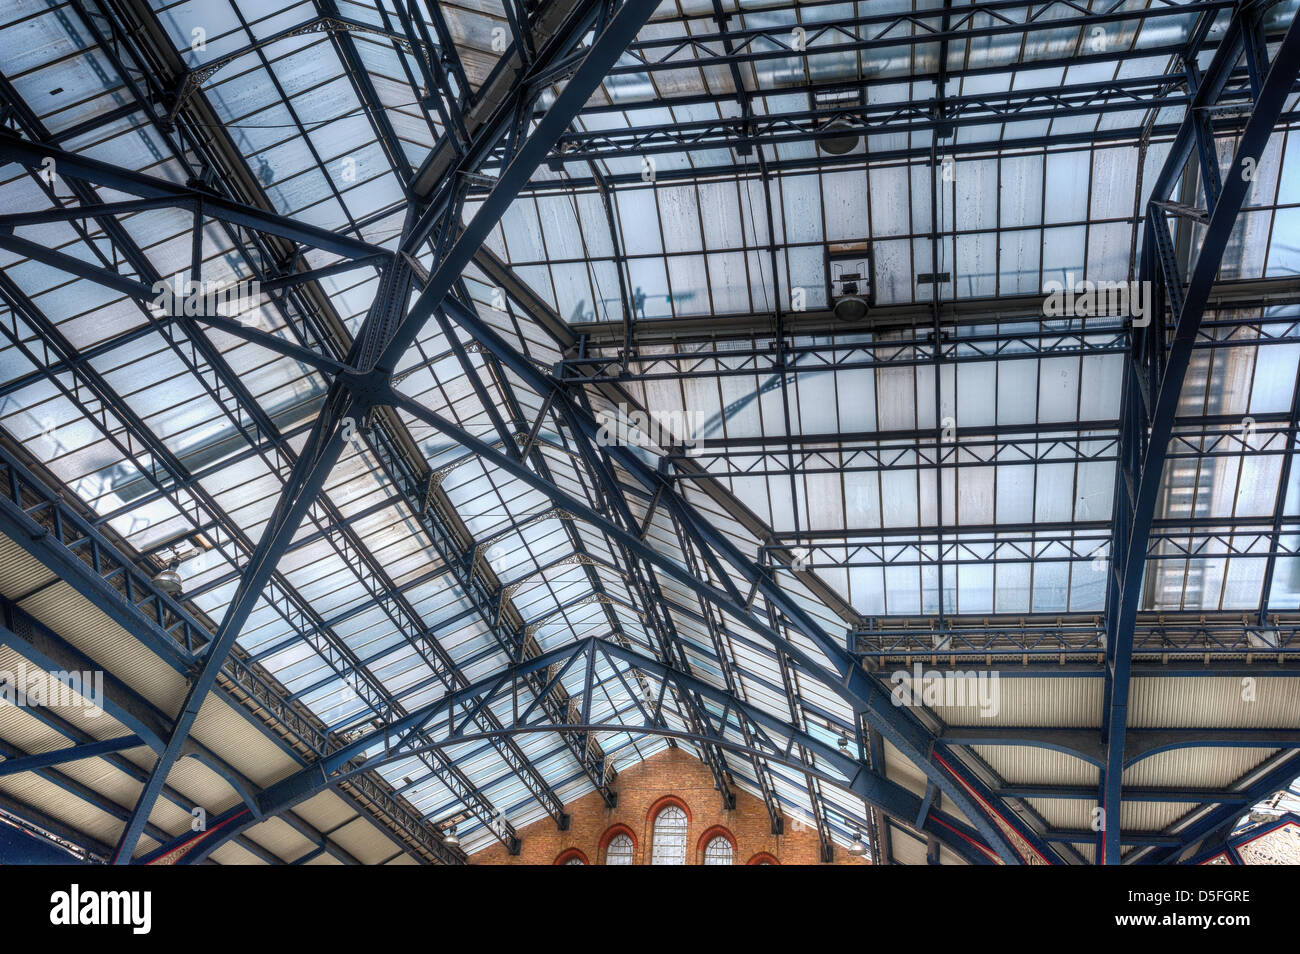 Different types of roofs ccd engineering ltd - Intricate Cast Iron Glazed Victorian Engineering And Detail Of Roof At Liverpool Street Station With Concourse Beneath